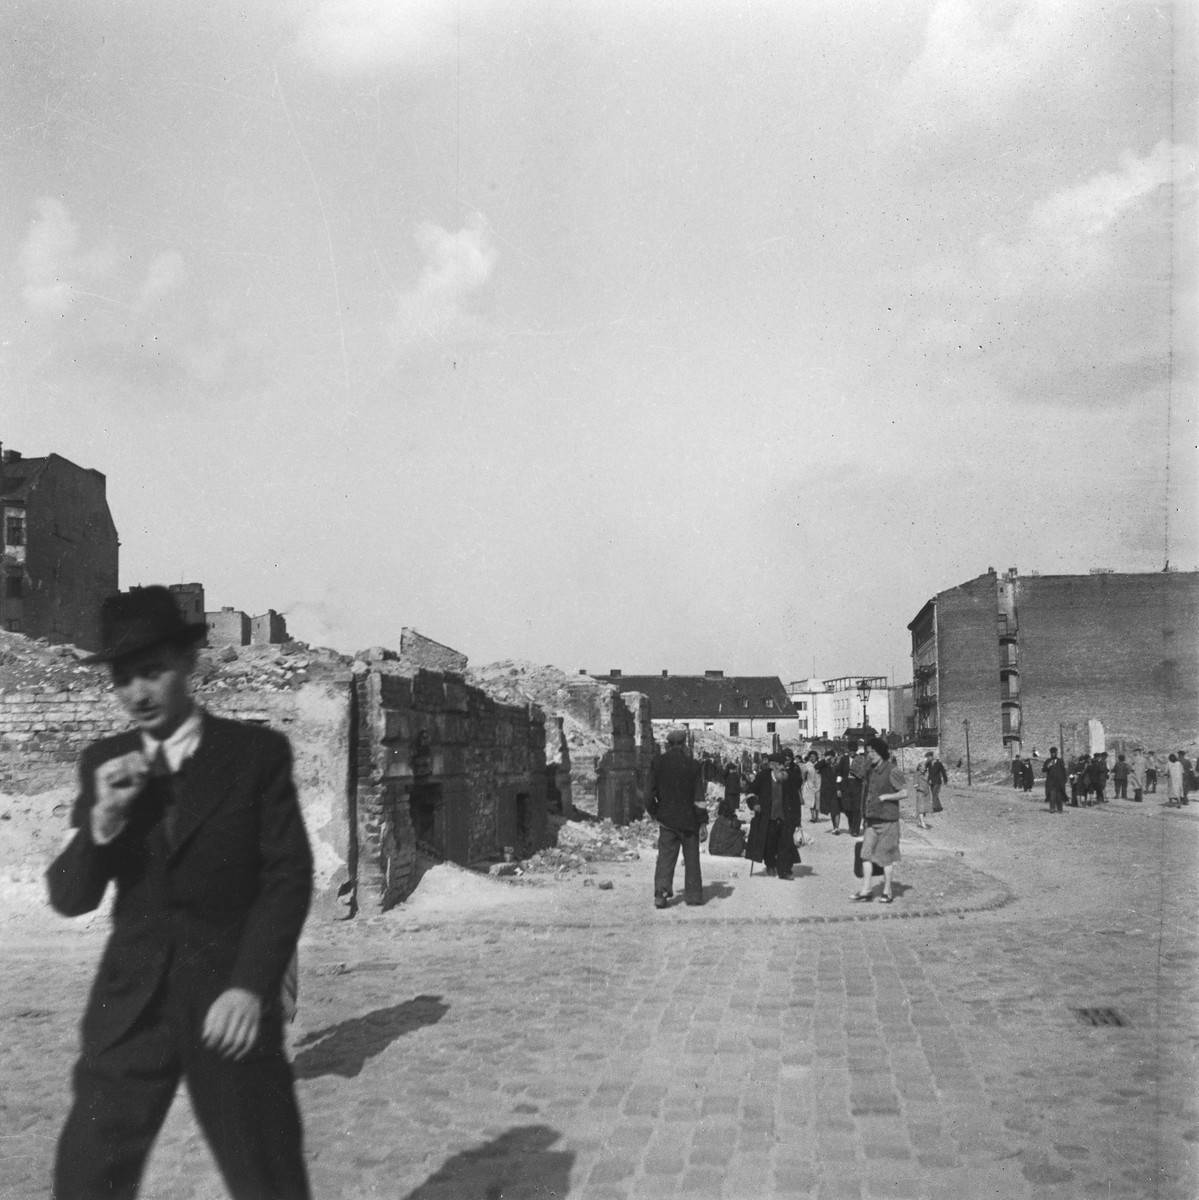 """Local inhabitants walk through the bombed-out streets of the Warsaw ghetto.  Joest's original caption reads: """"I don't know where this was.  It was quite normal to see many people in the bombed-out streets of Warsaw."""""""